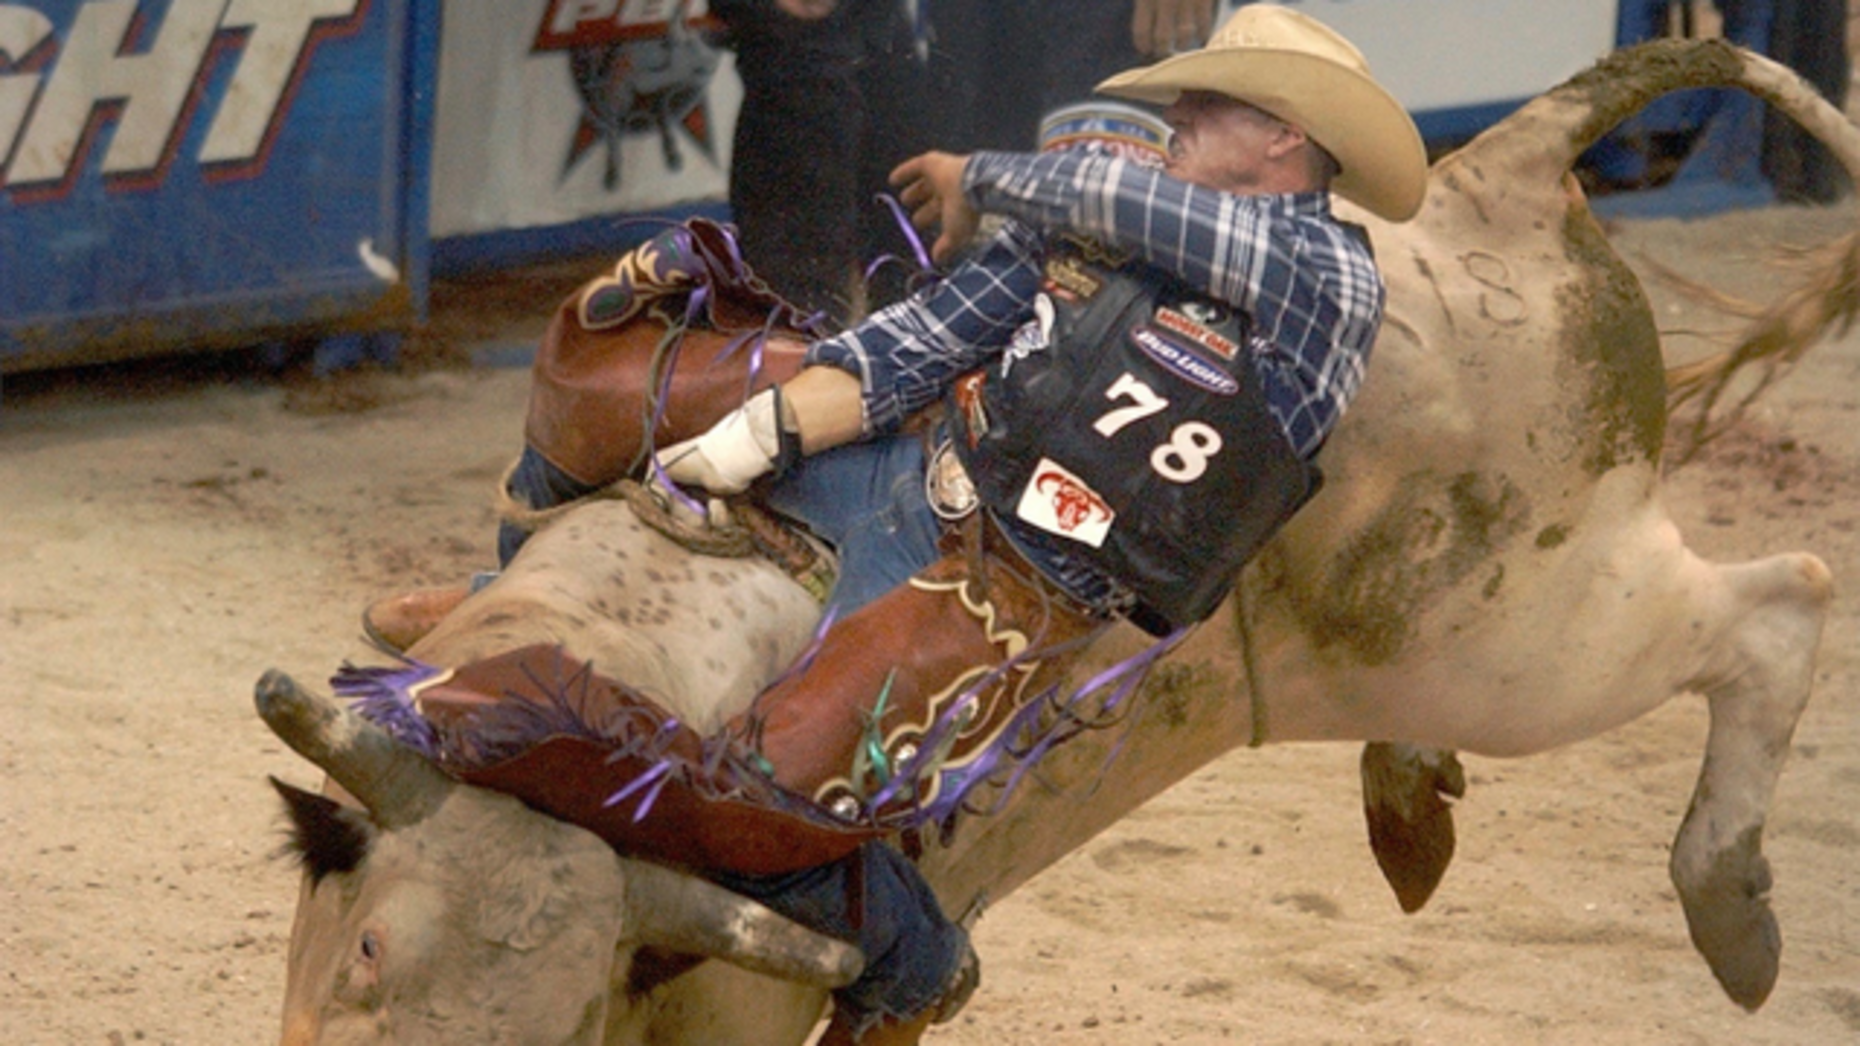 A bullrider during a Professional Bull Riders event. Endeavor now owns the Professional Bull Riders. Photo by AP.